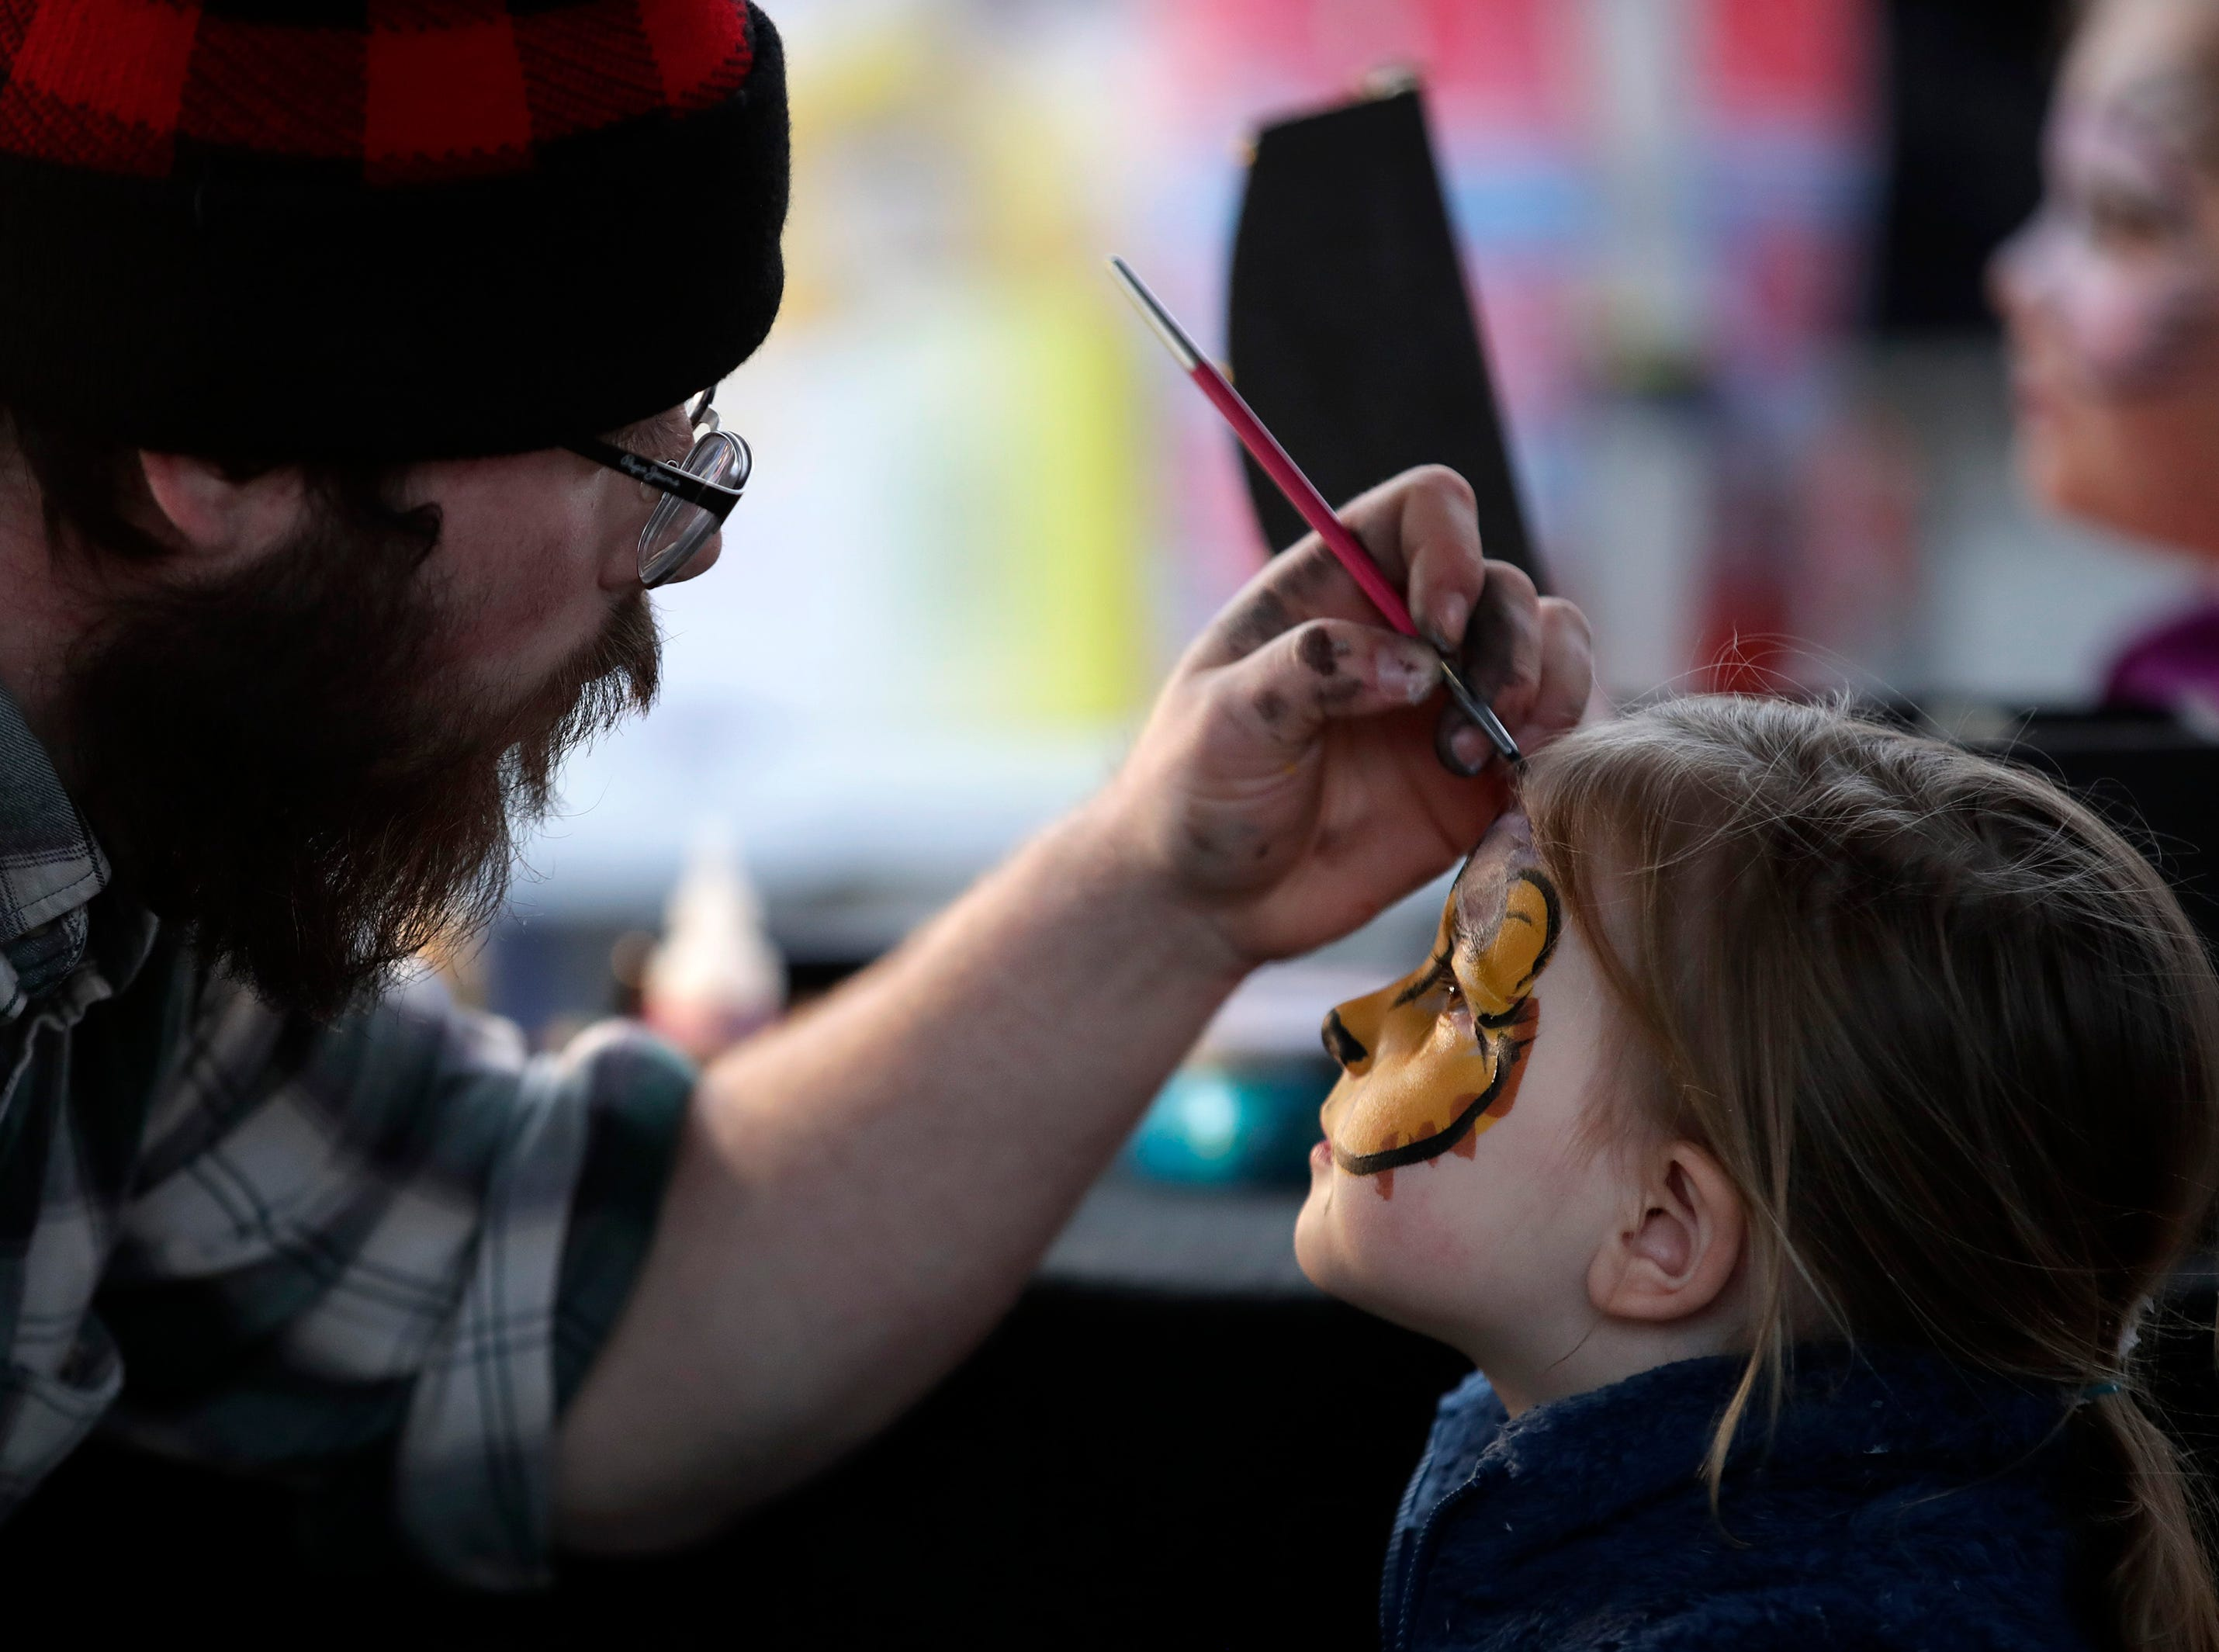 Tommy Mlodzik, with Mischief & Magic, paints Hope Choronzy's, 3, of Sherwood, face during Bazaar After Dark Saturday, May 11, 2019, in Brillion, Wis. Danny Damiani/USA TODAY NETWORK-Wisconsin